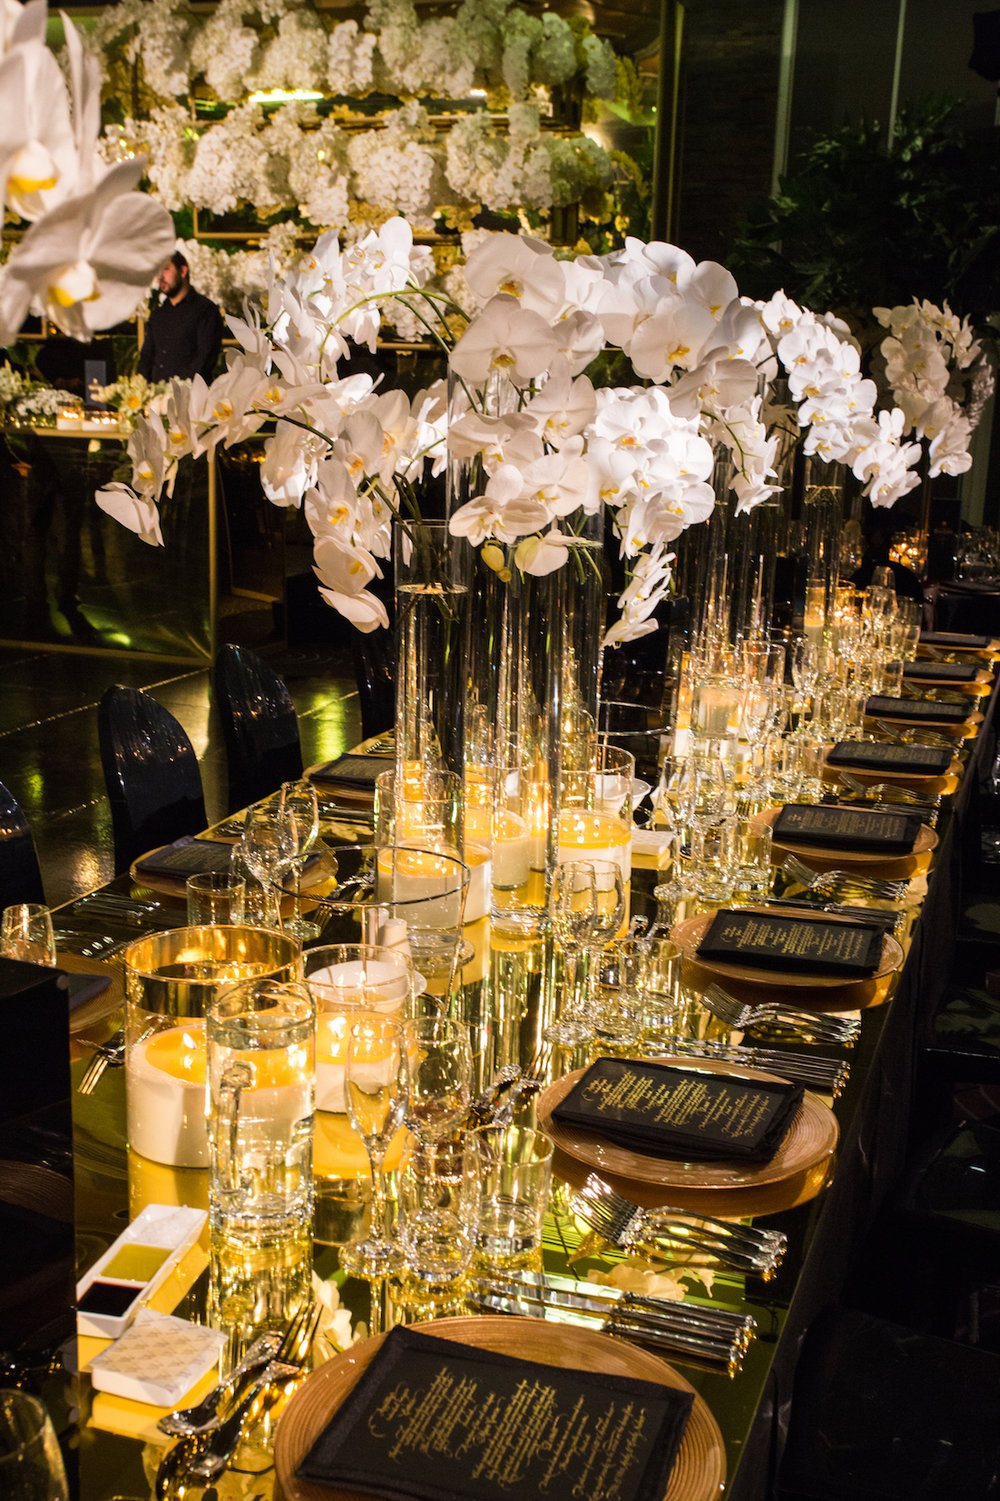 waterview_black_gold_luxury_wedding_mirror_table_orchids_centrepiece.jpg